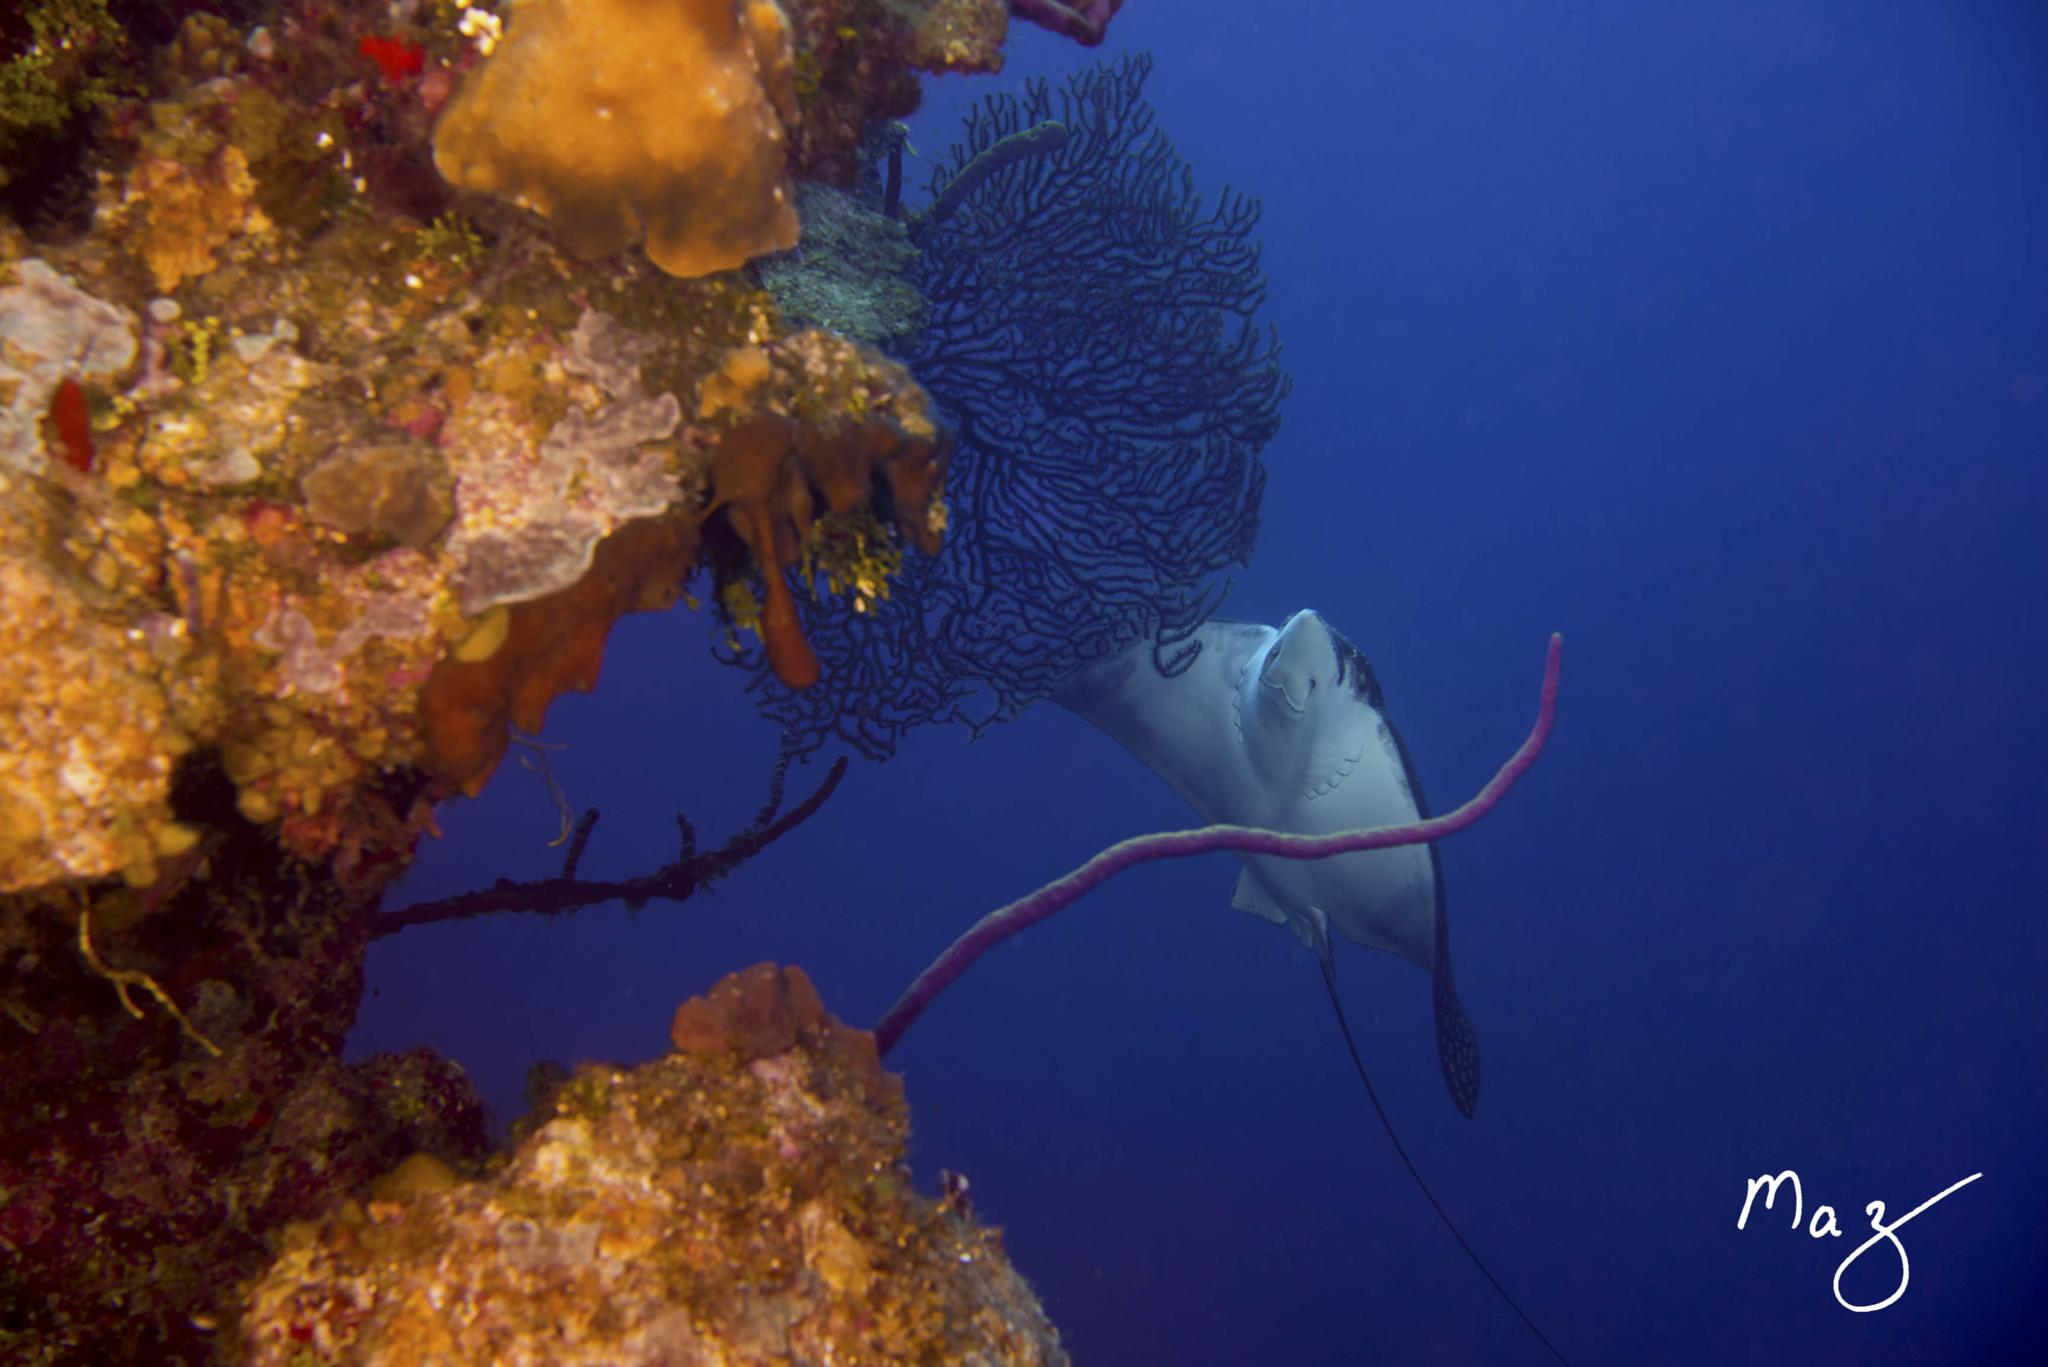 Spotted Eagle Ray by Maz Zabaneh